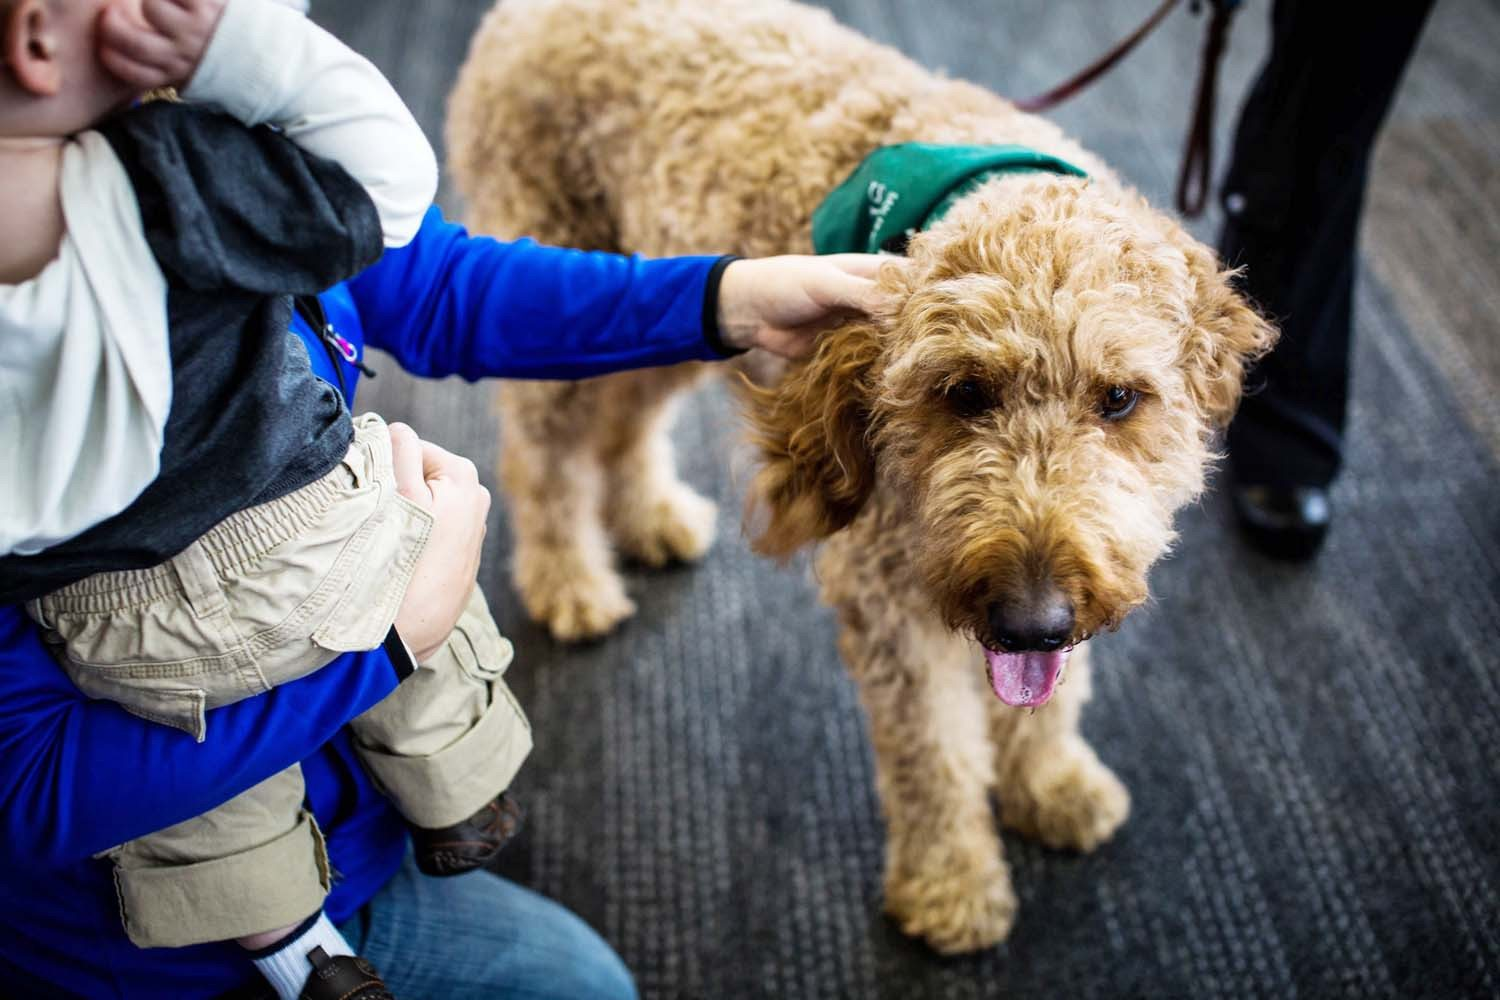 Courtesy photoSFO is teaming with the San Francisco SPCA on the new Wag Brigade program. Eight dogs from the SPCA's Animal Assisted Therapy Program will pay visits to SFO terminals along with their volunteer walkers